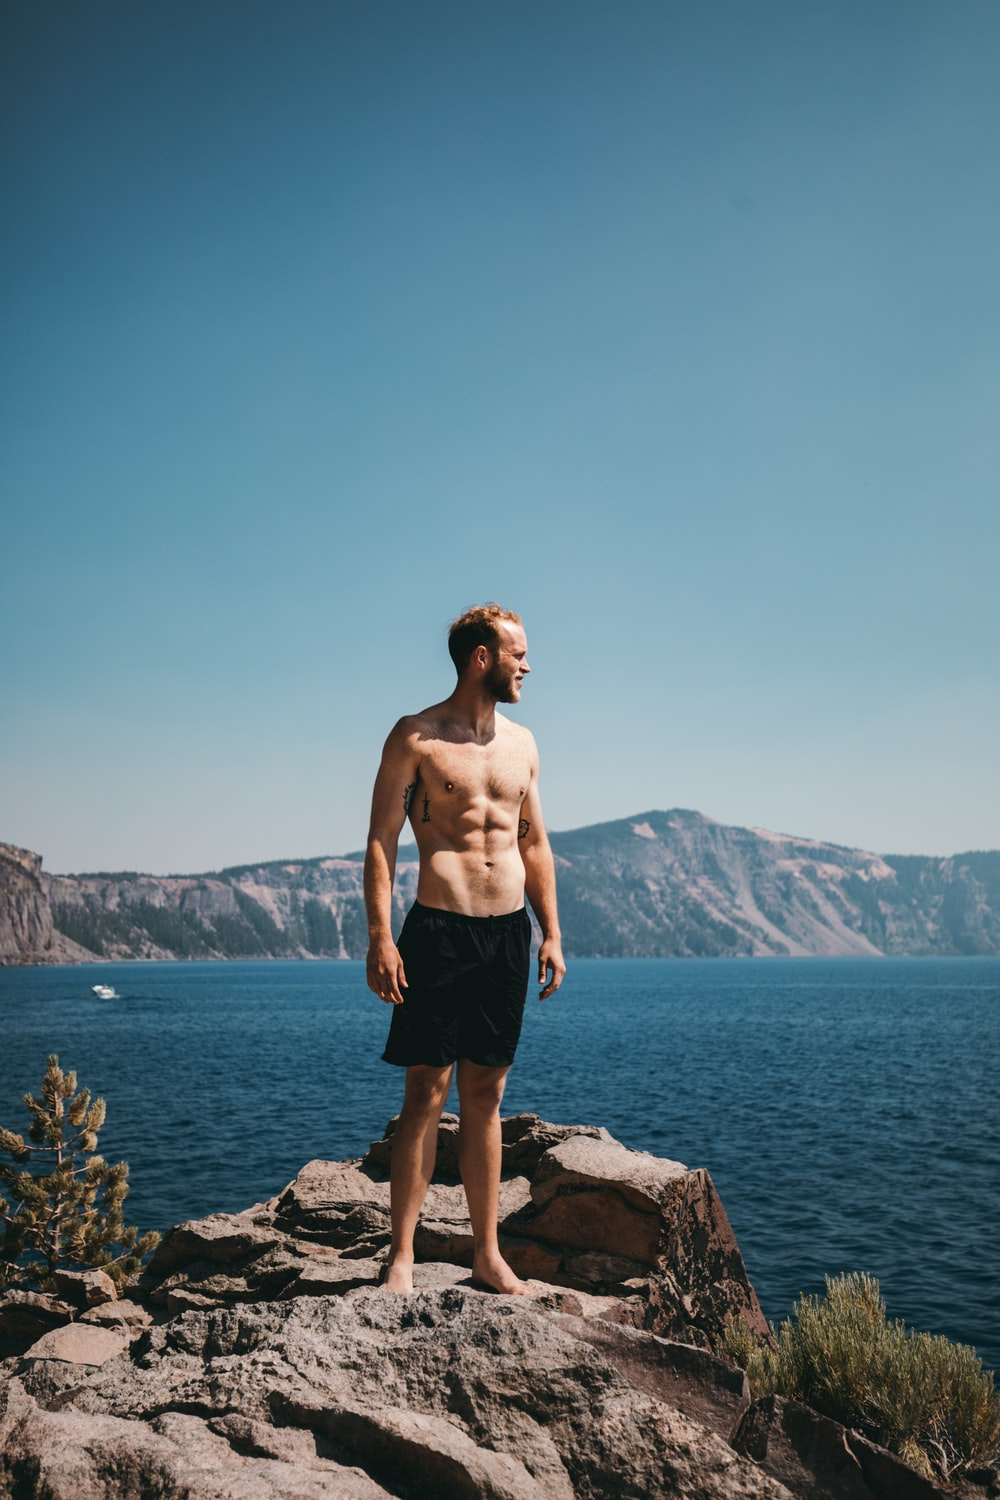 man standing on stone formation beside body of water